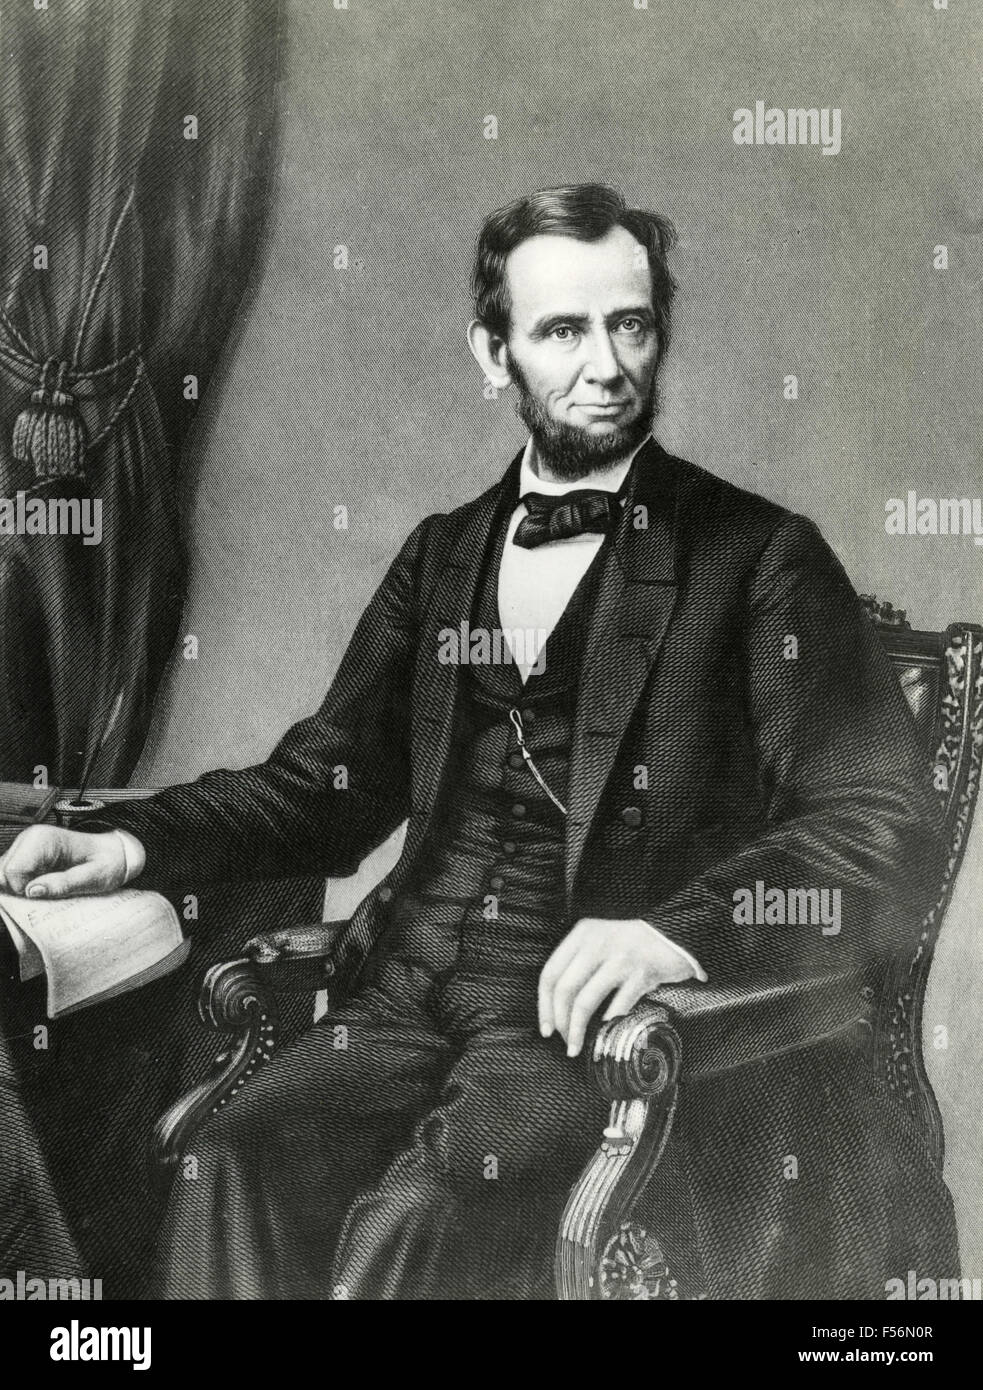 Portrait of American president Abraham Lincoln - Stock Image